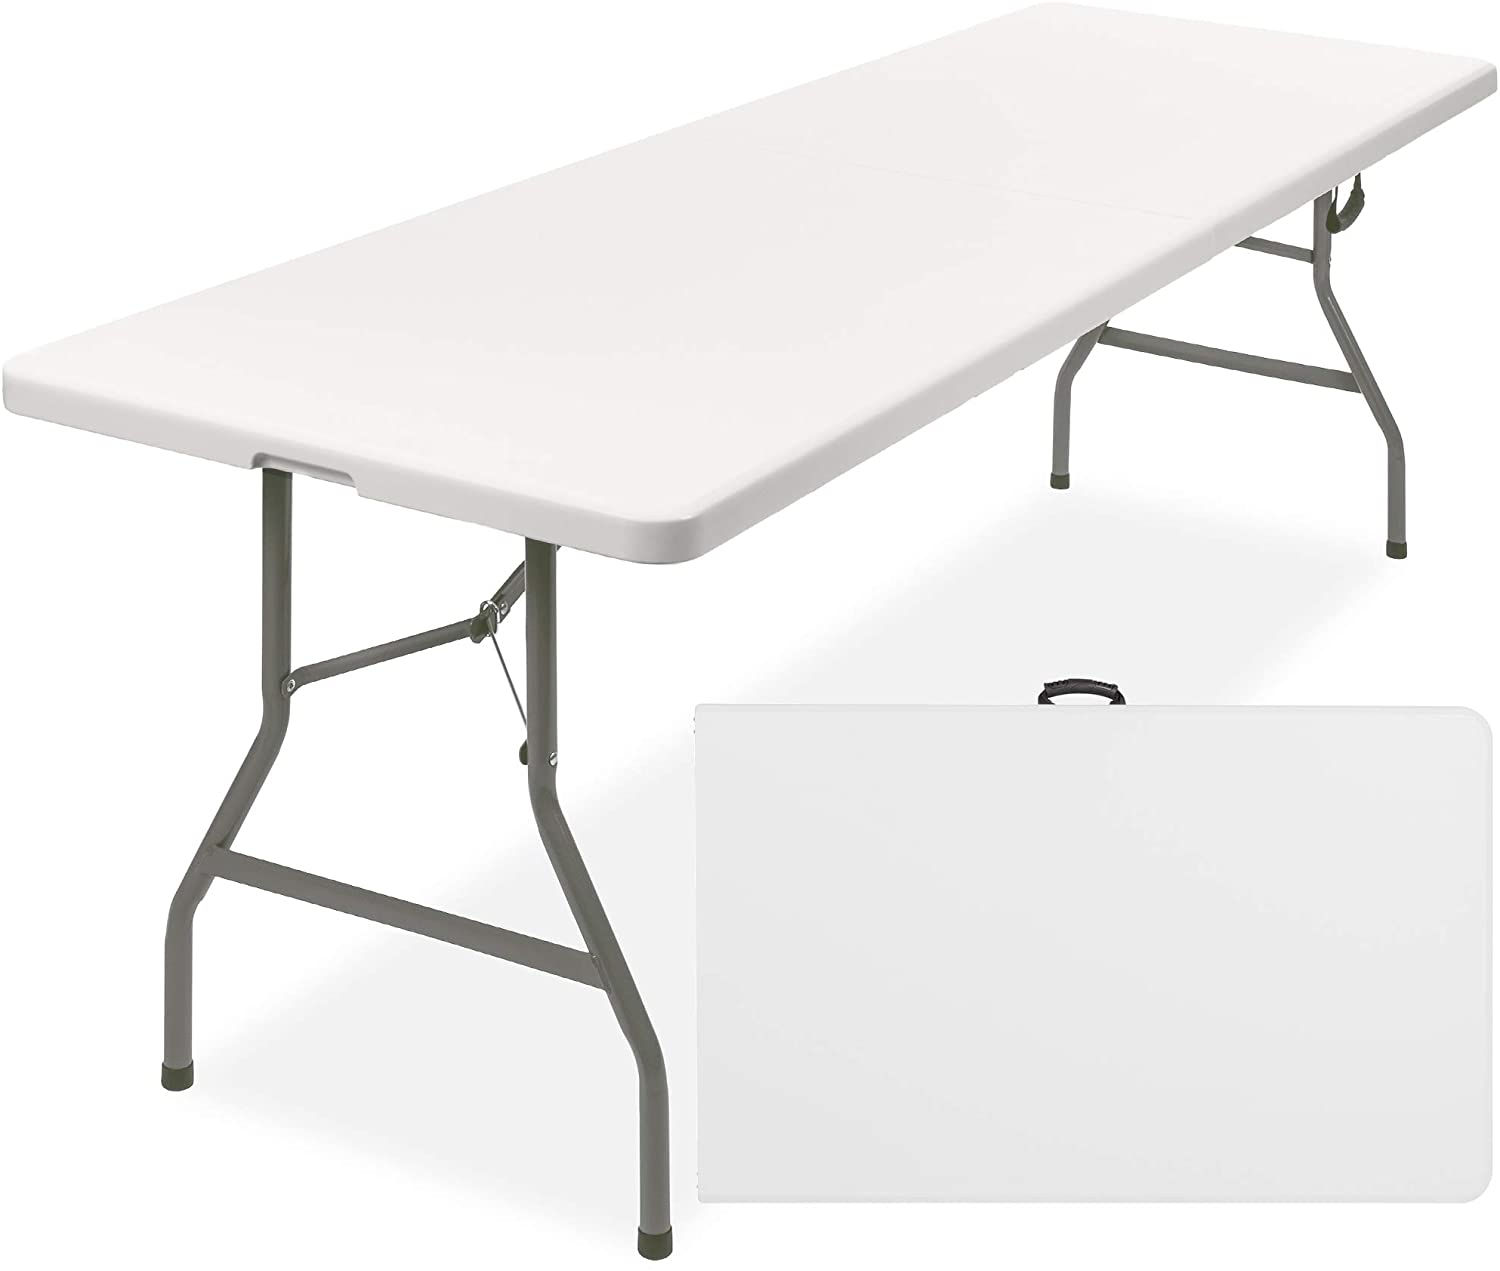 2.5/' Portable Rectangular Blow Moulded Heavy Duty Camping Scout Party Table